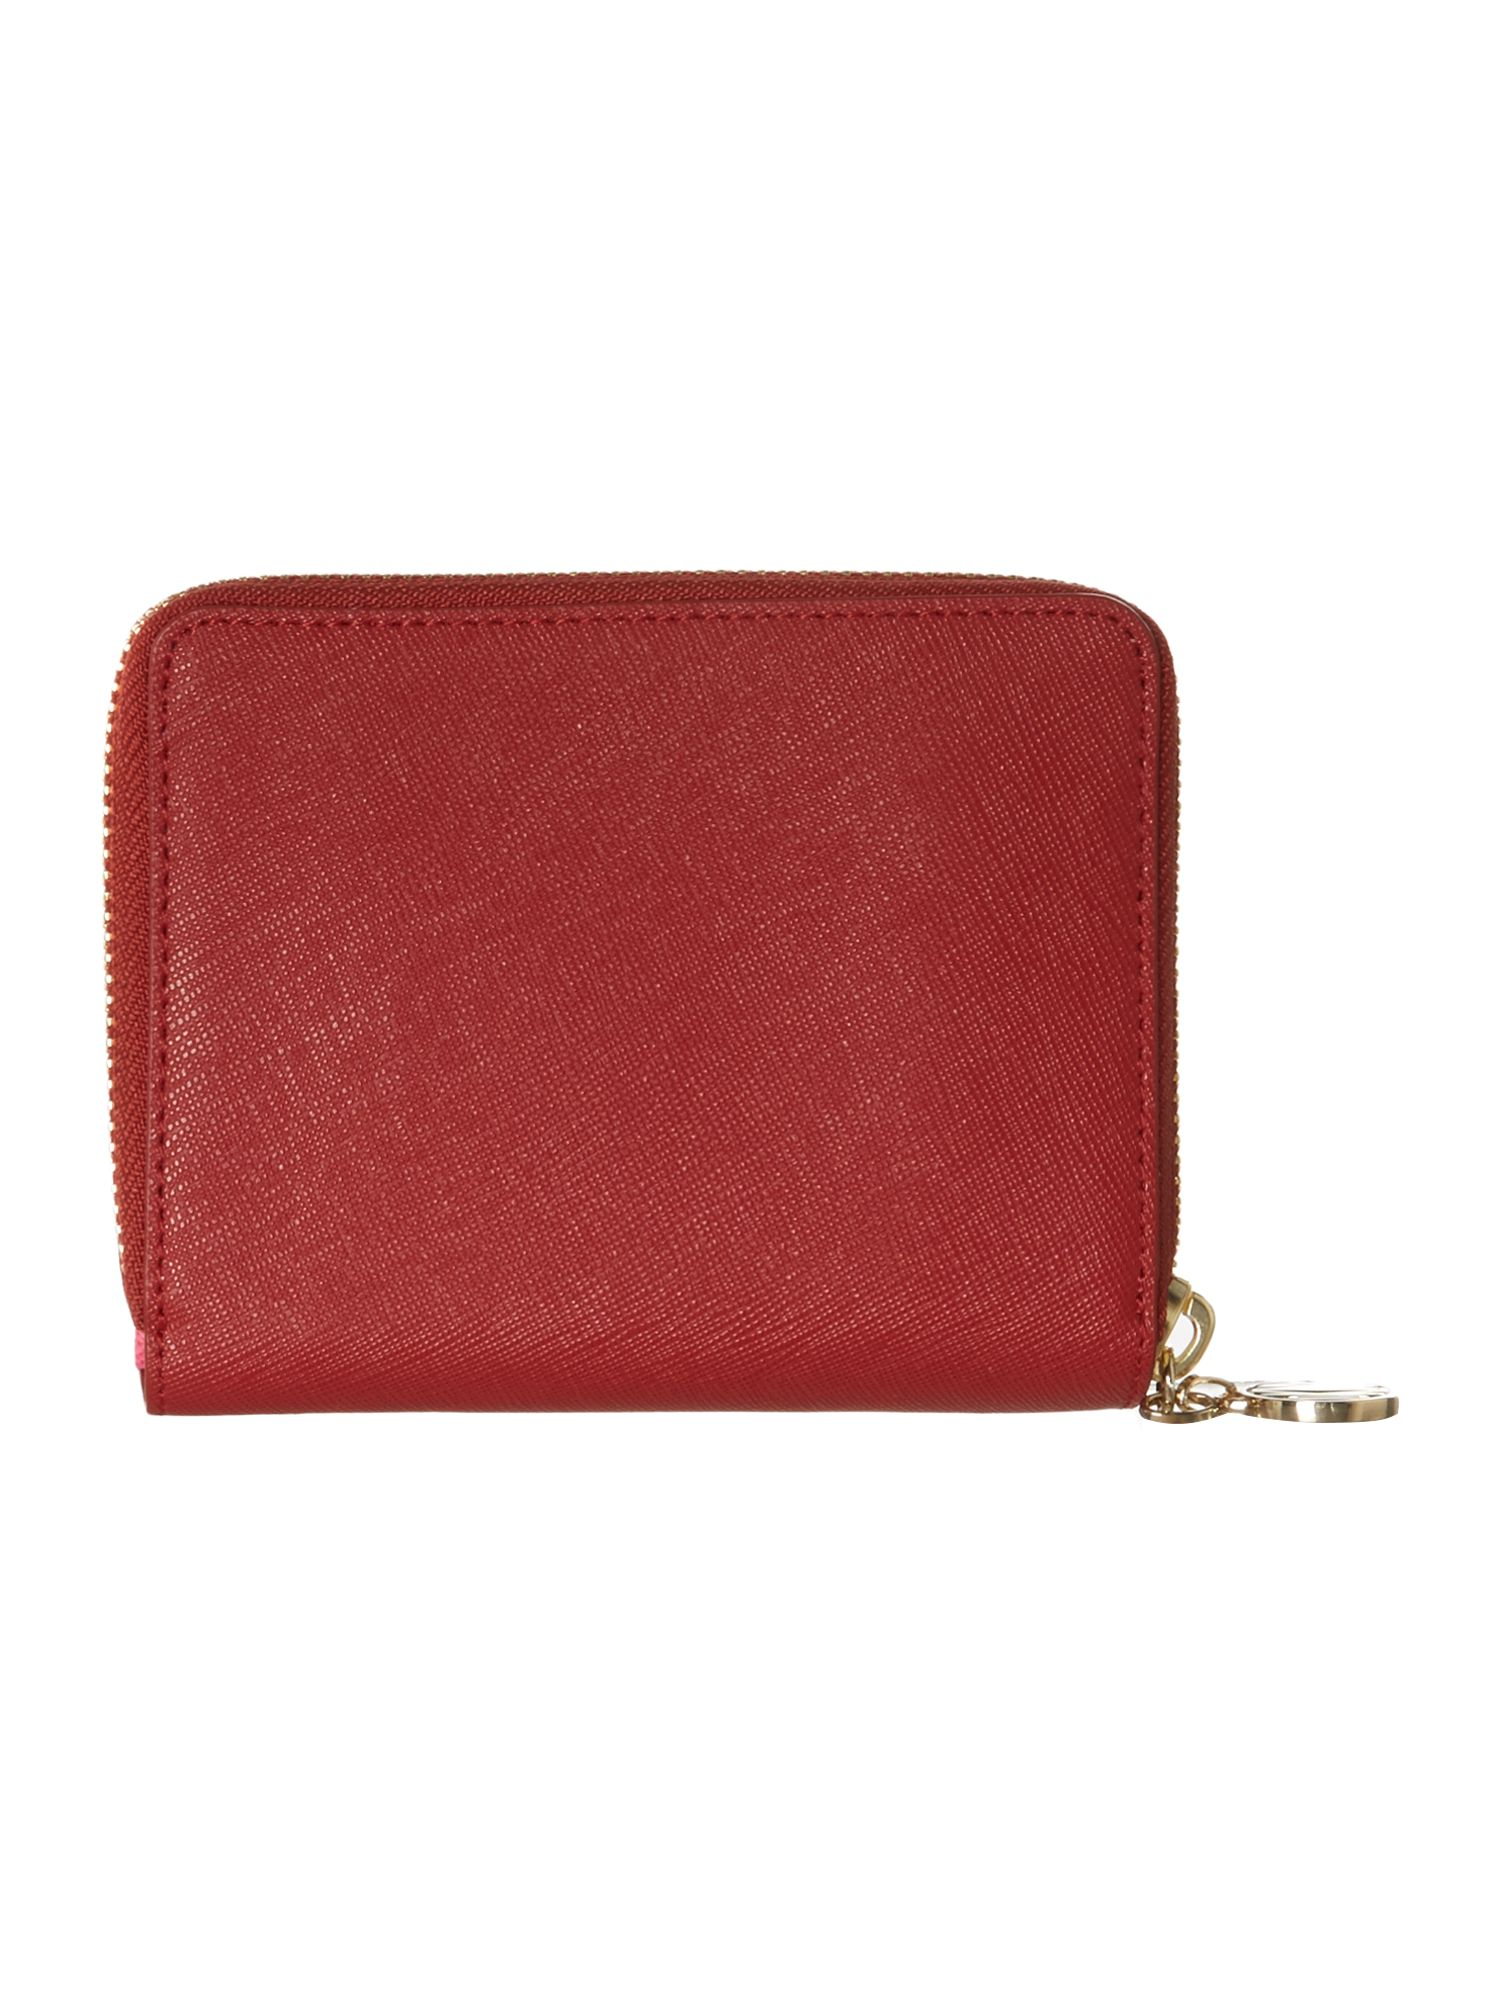 Saffiano red small zip around